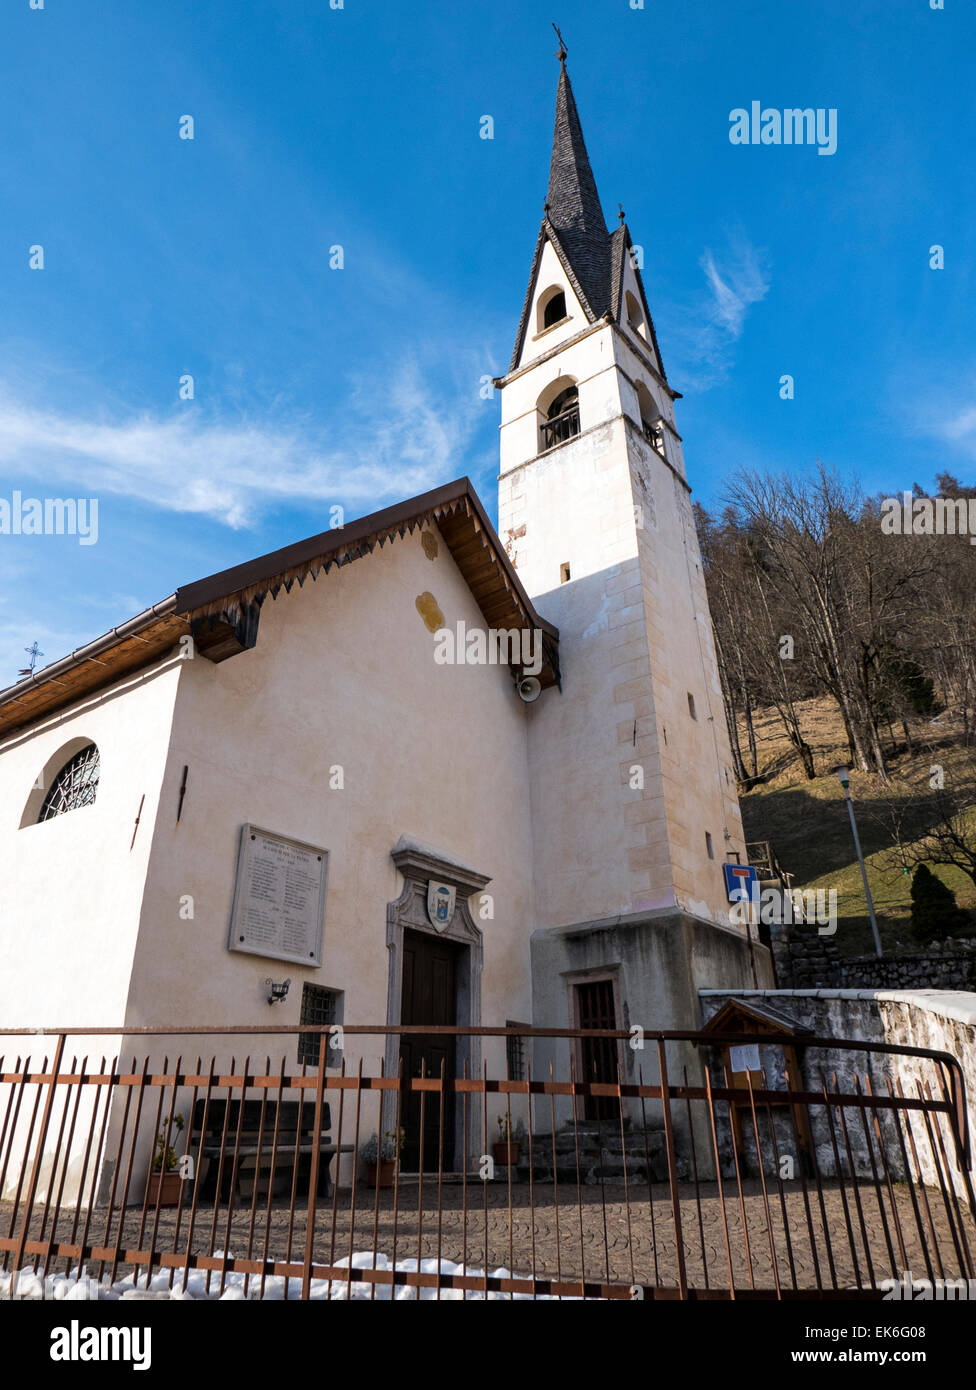 Church, village of Fornesighe, northern Italy - Stock Image